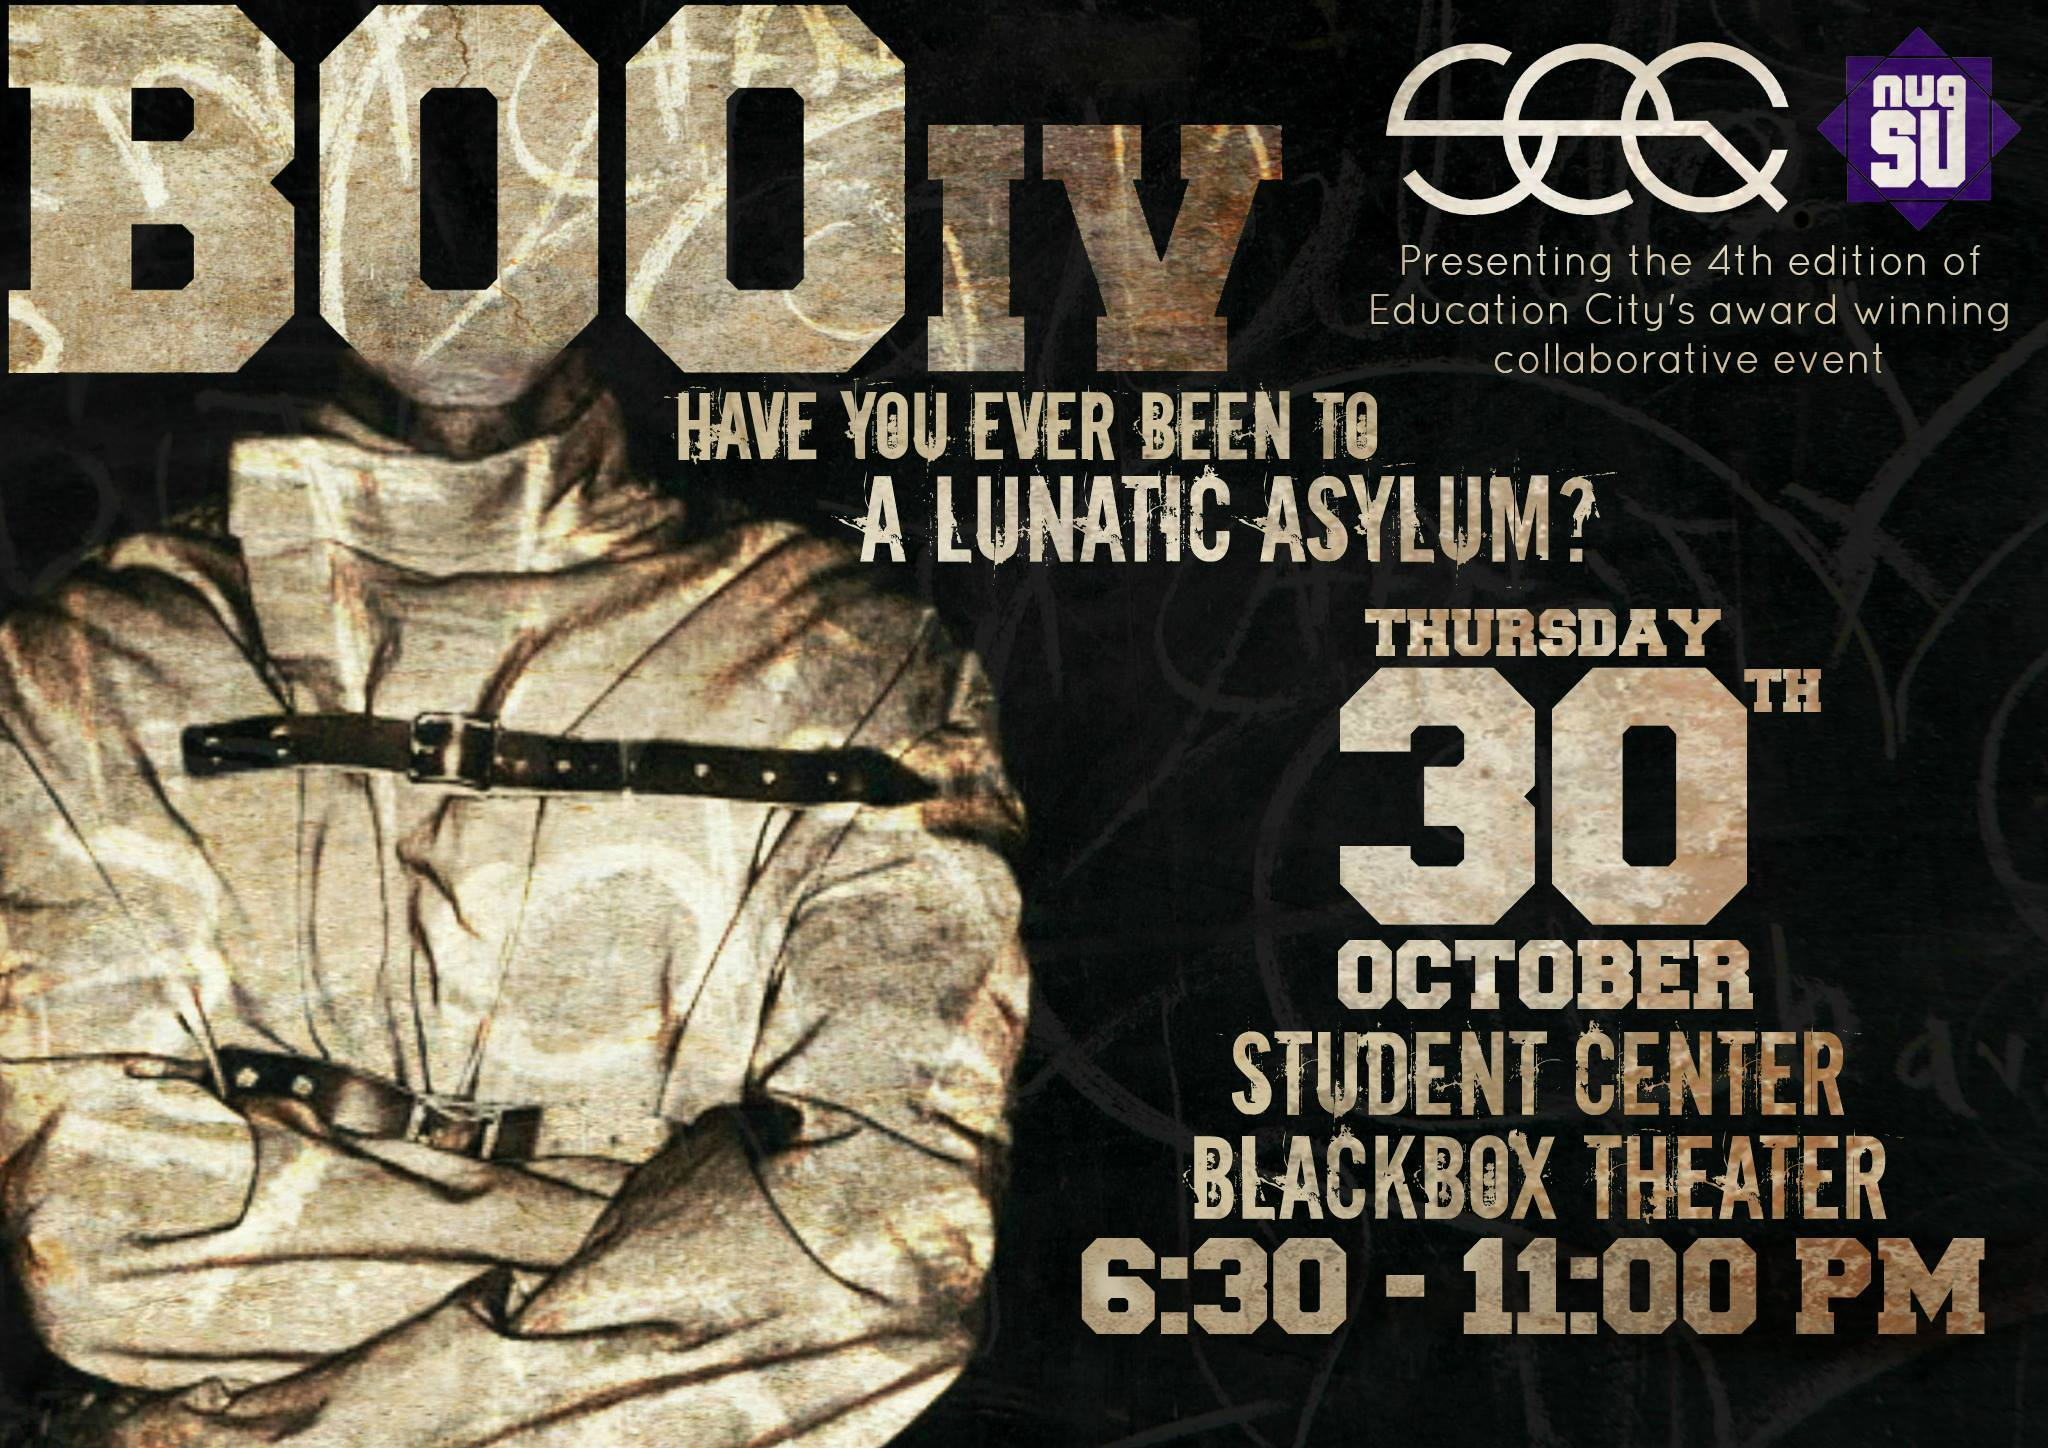 BOO IV Poster - October 2014